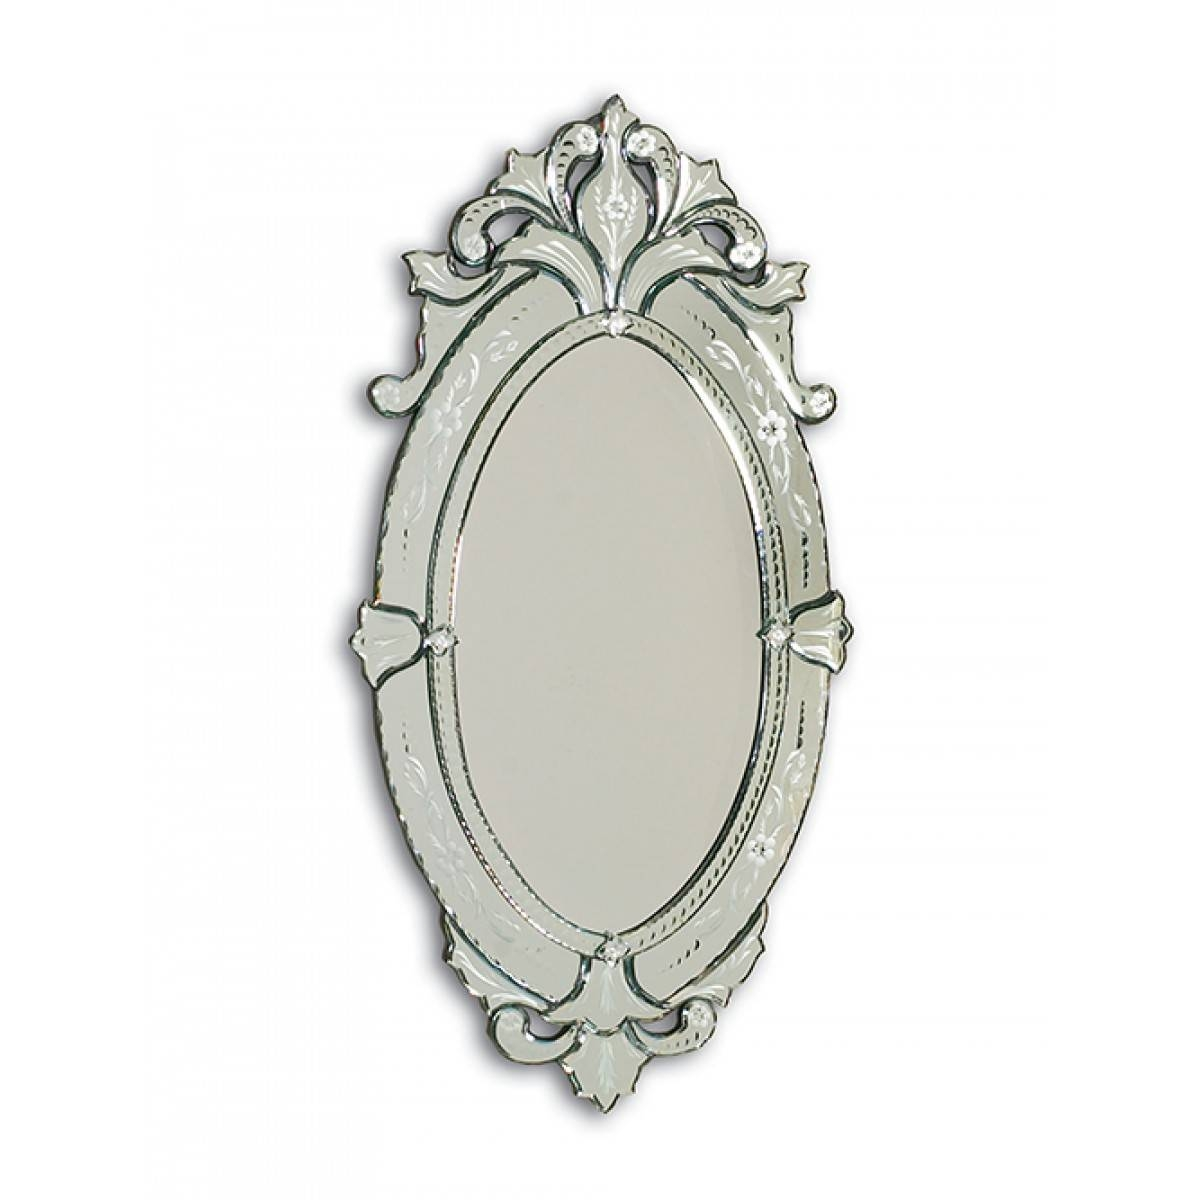 Barge Hand Cut And Etched Oval Venetian Glass Mirror Frame Regarding Venetian Glass Mirrors (View 4 of 15)